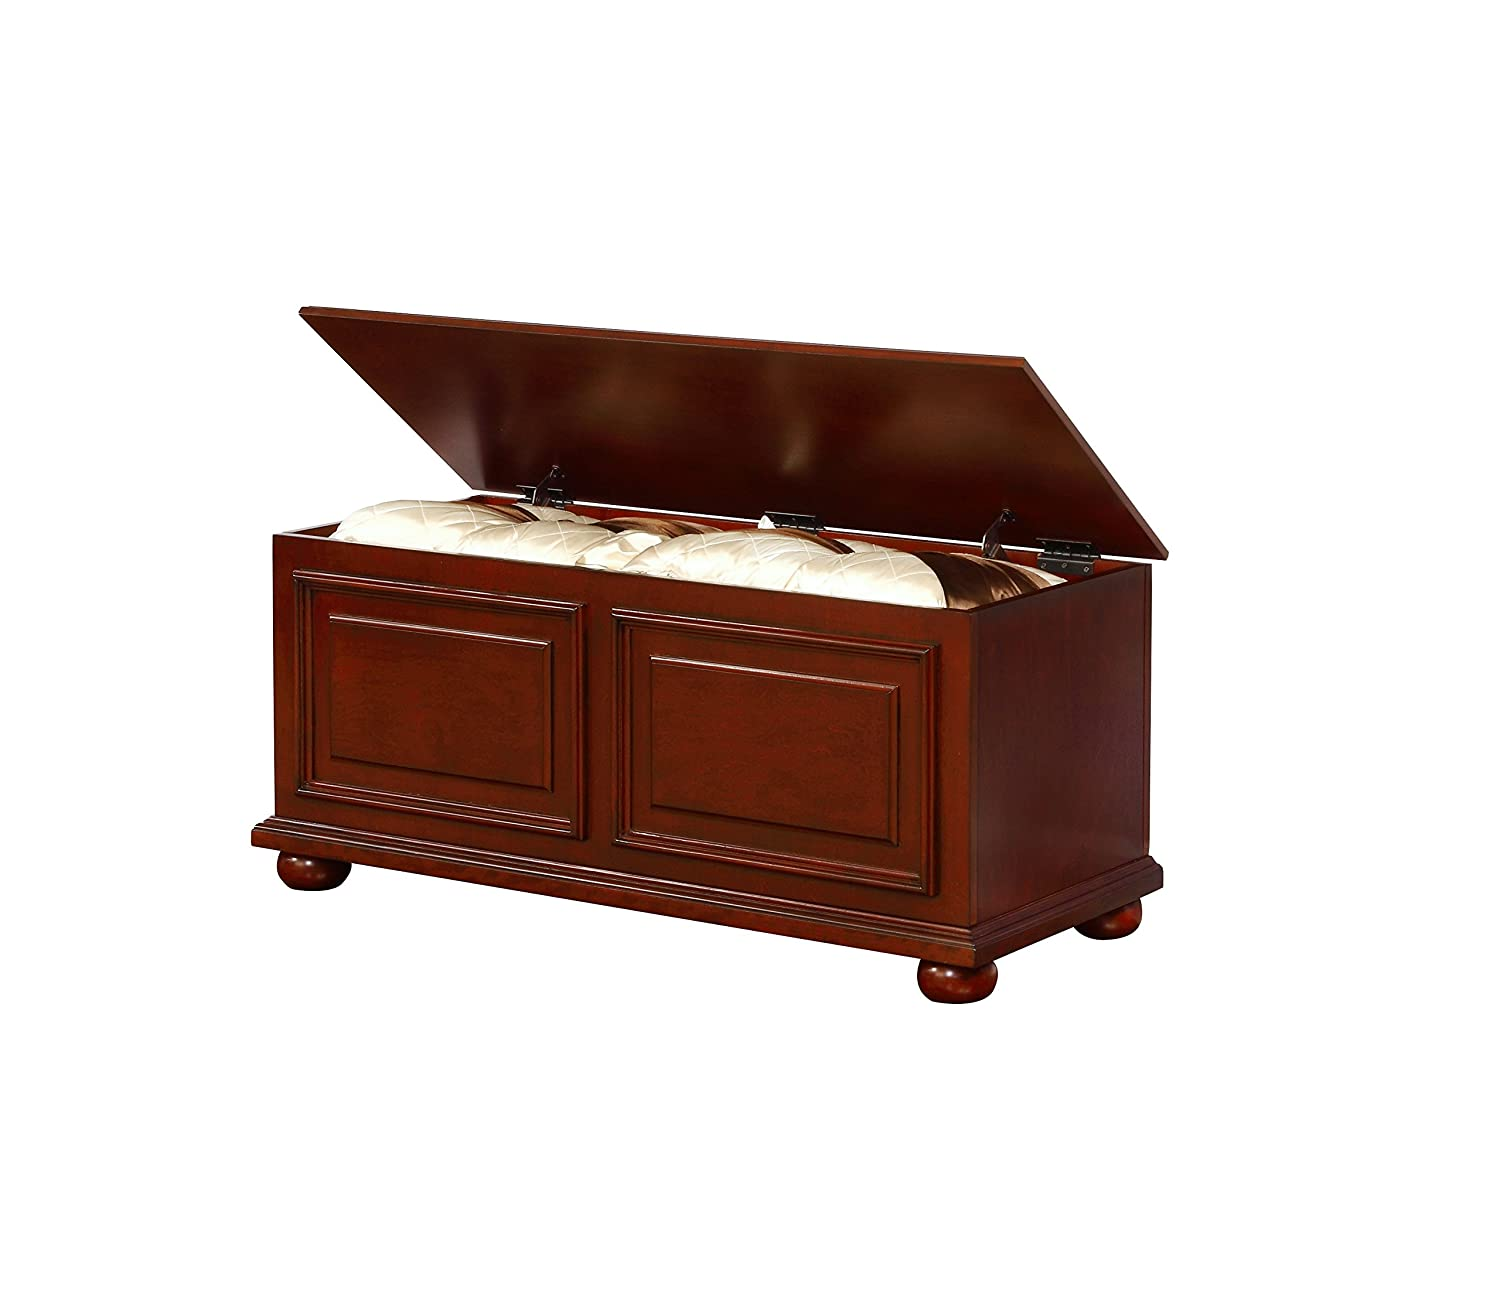 Powell Furniture 15A7025 Chadwick Cedar Chest